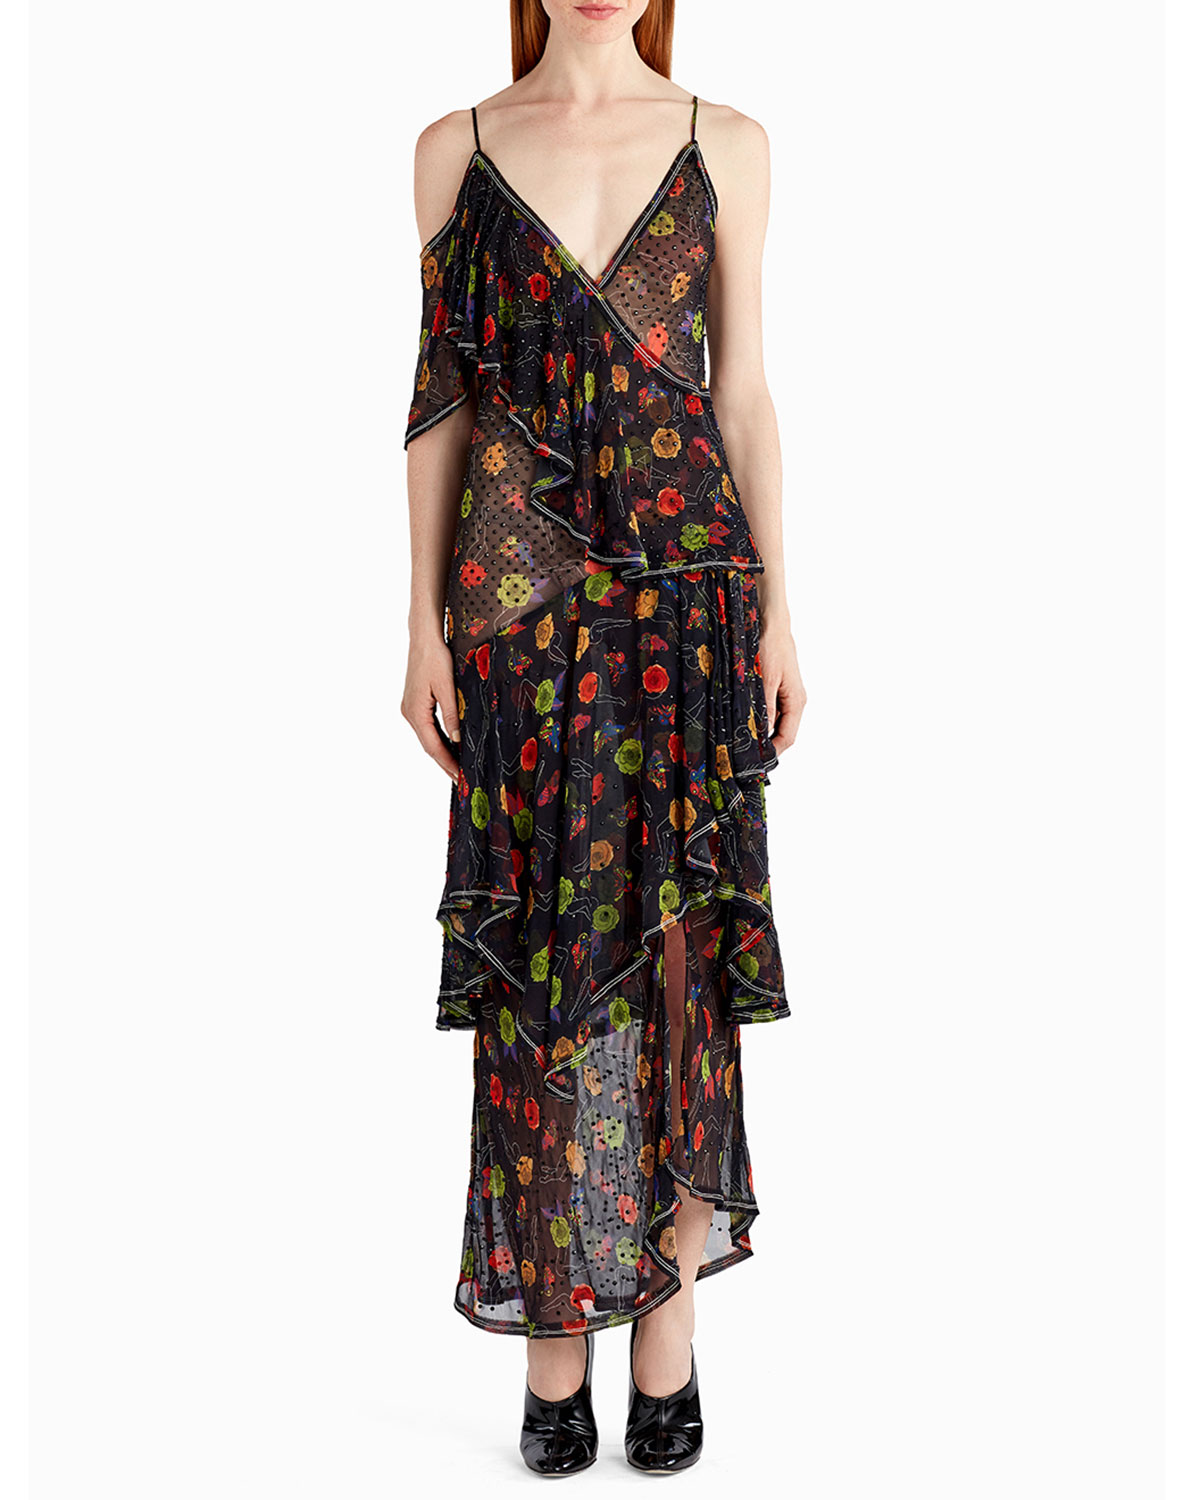 Crystal-Beaded Floral Chiffon Cocktail Dress